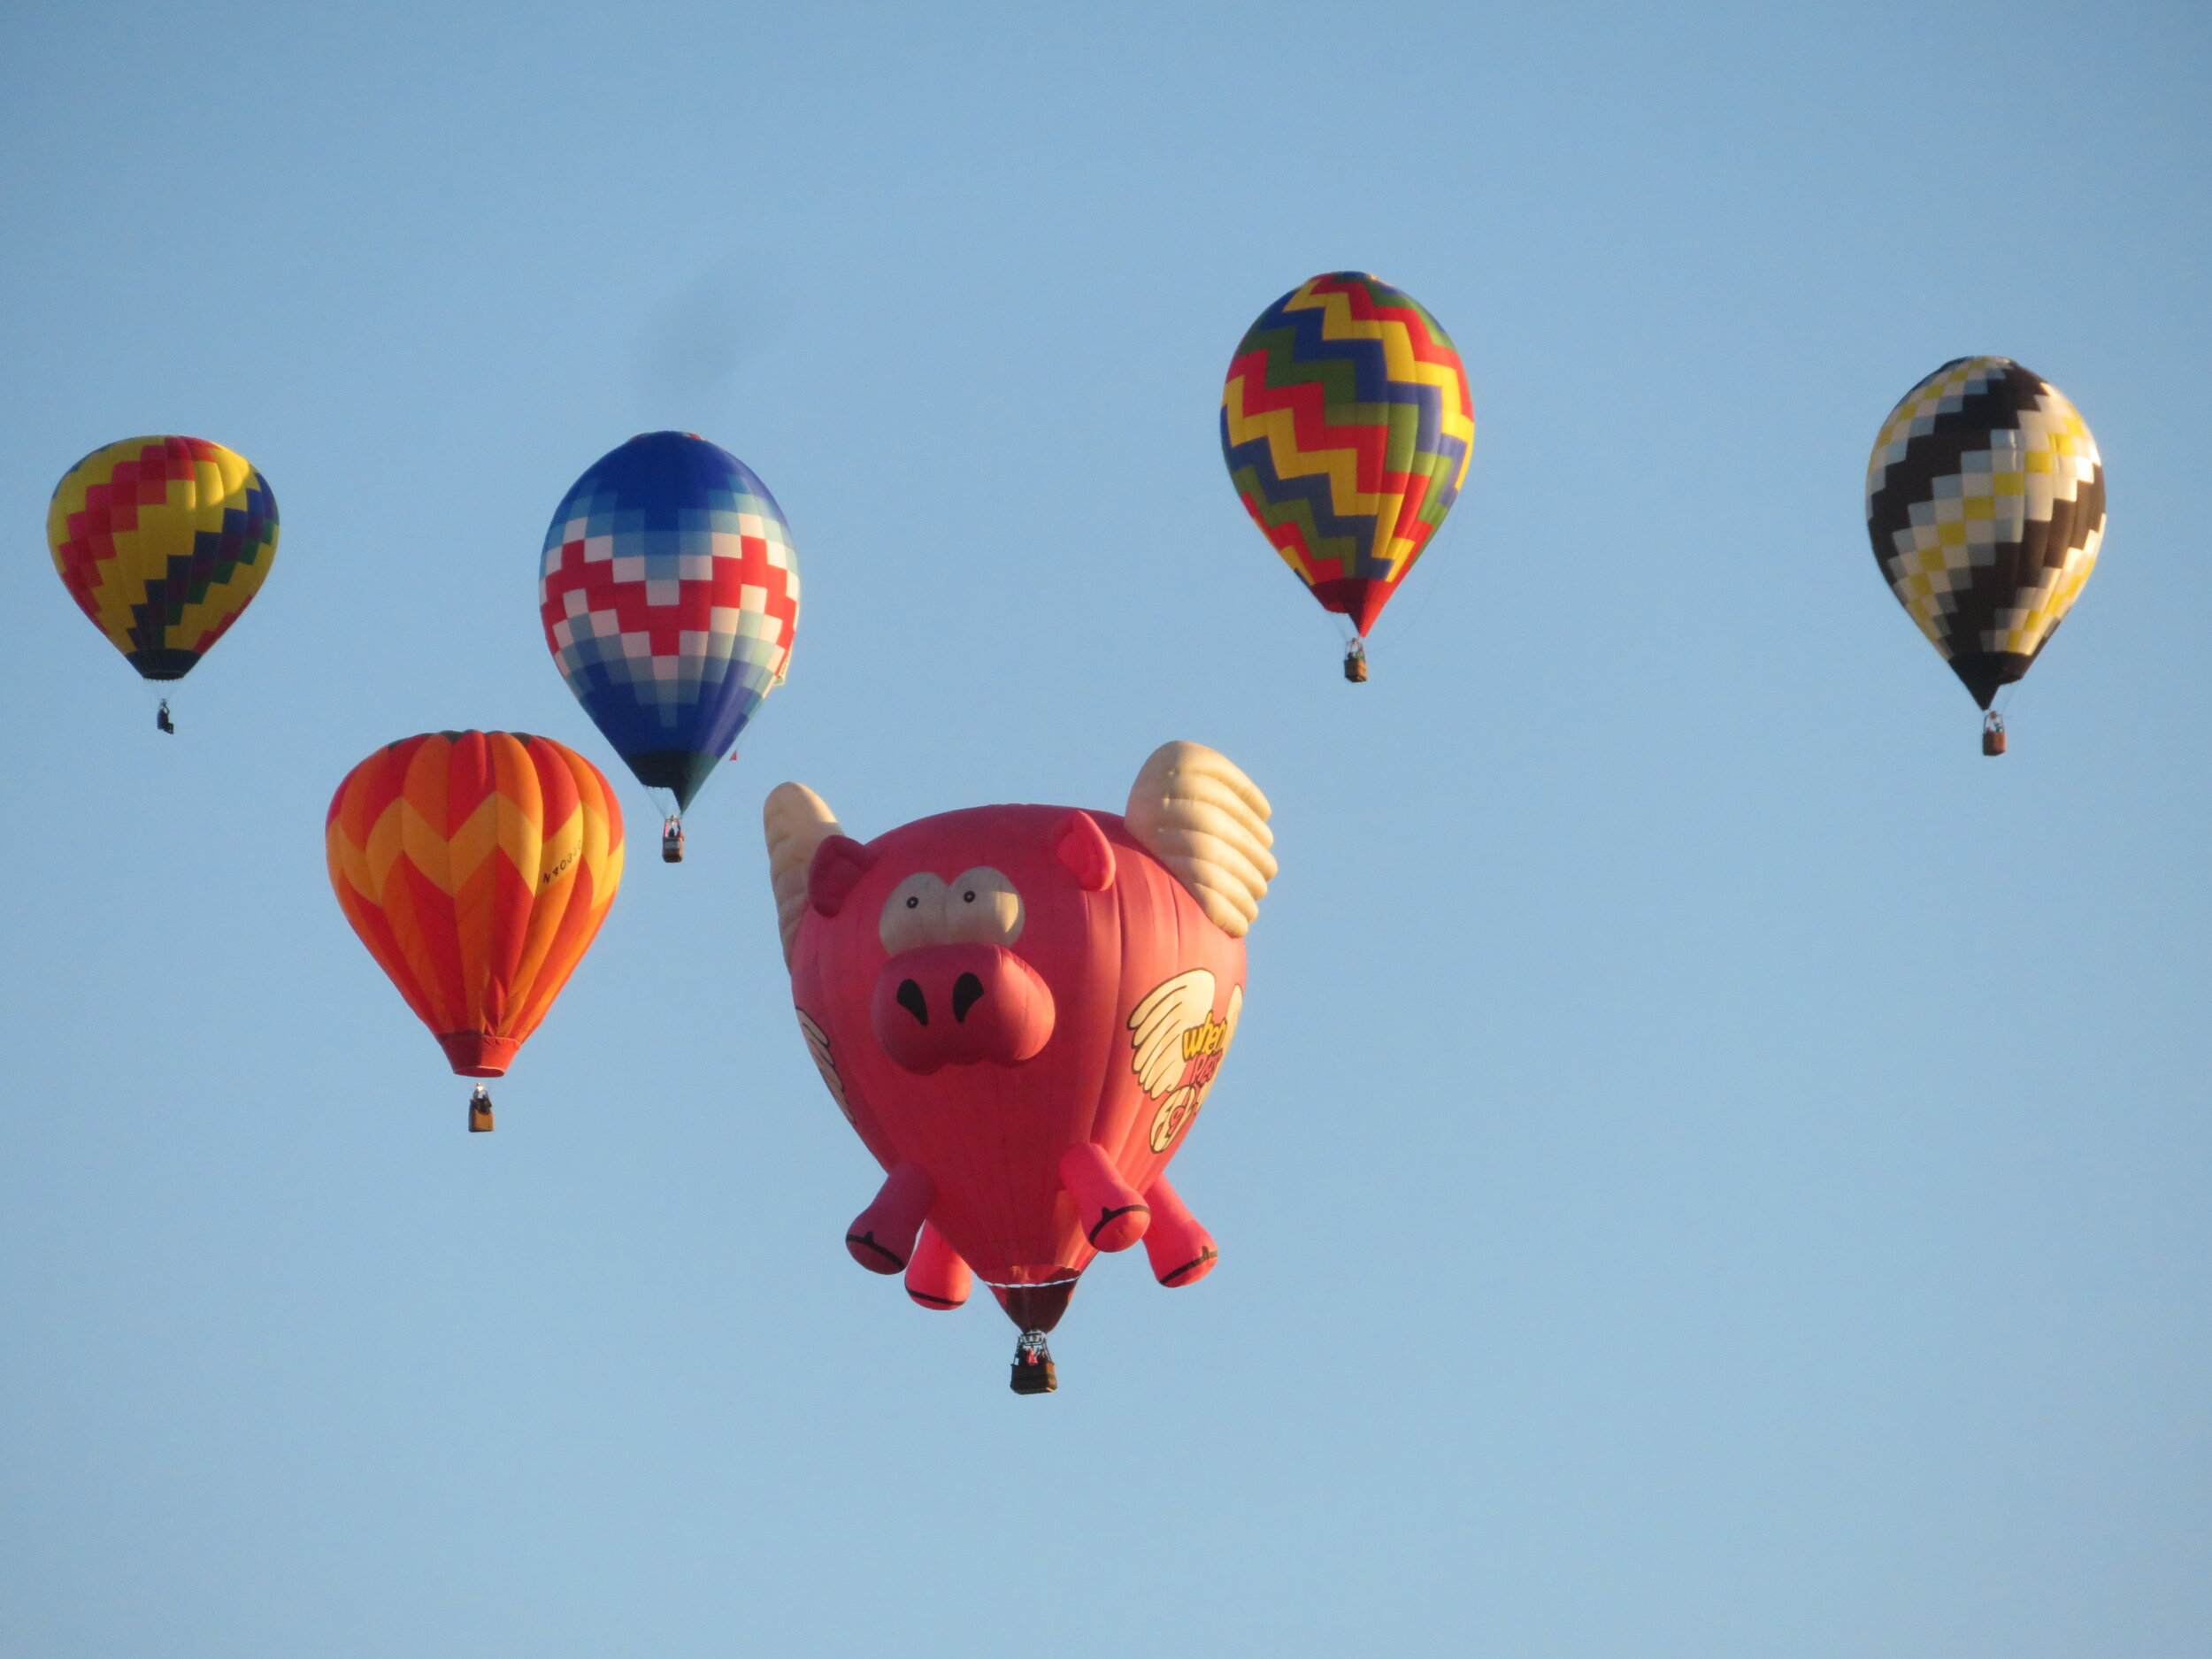 The sky was blue. The air was cold. The day was perfect. And the view? The view was spectacular. Even the pig was flying!